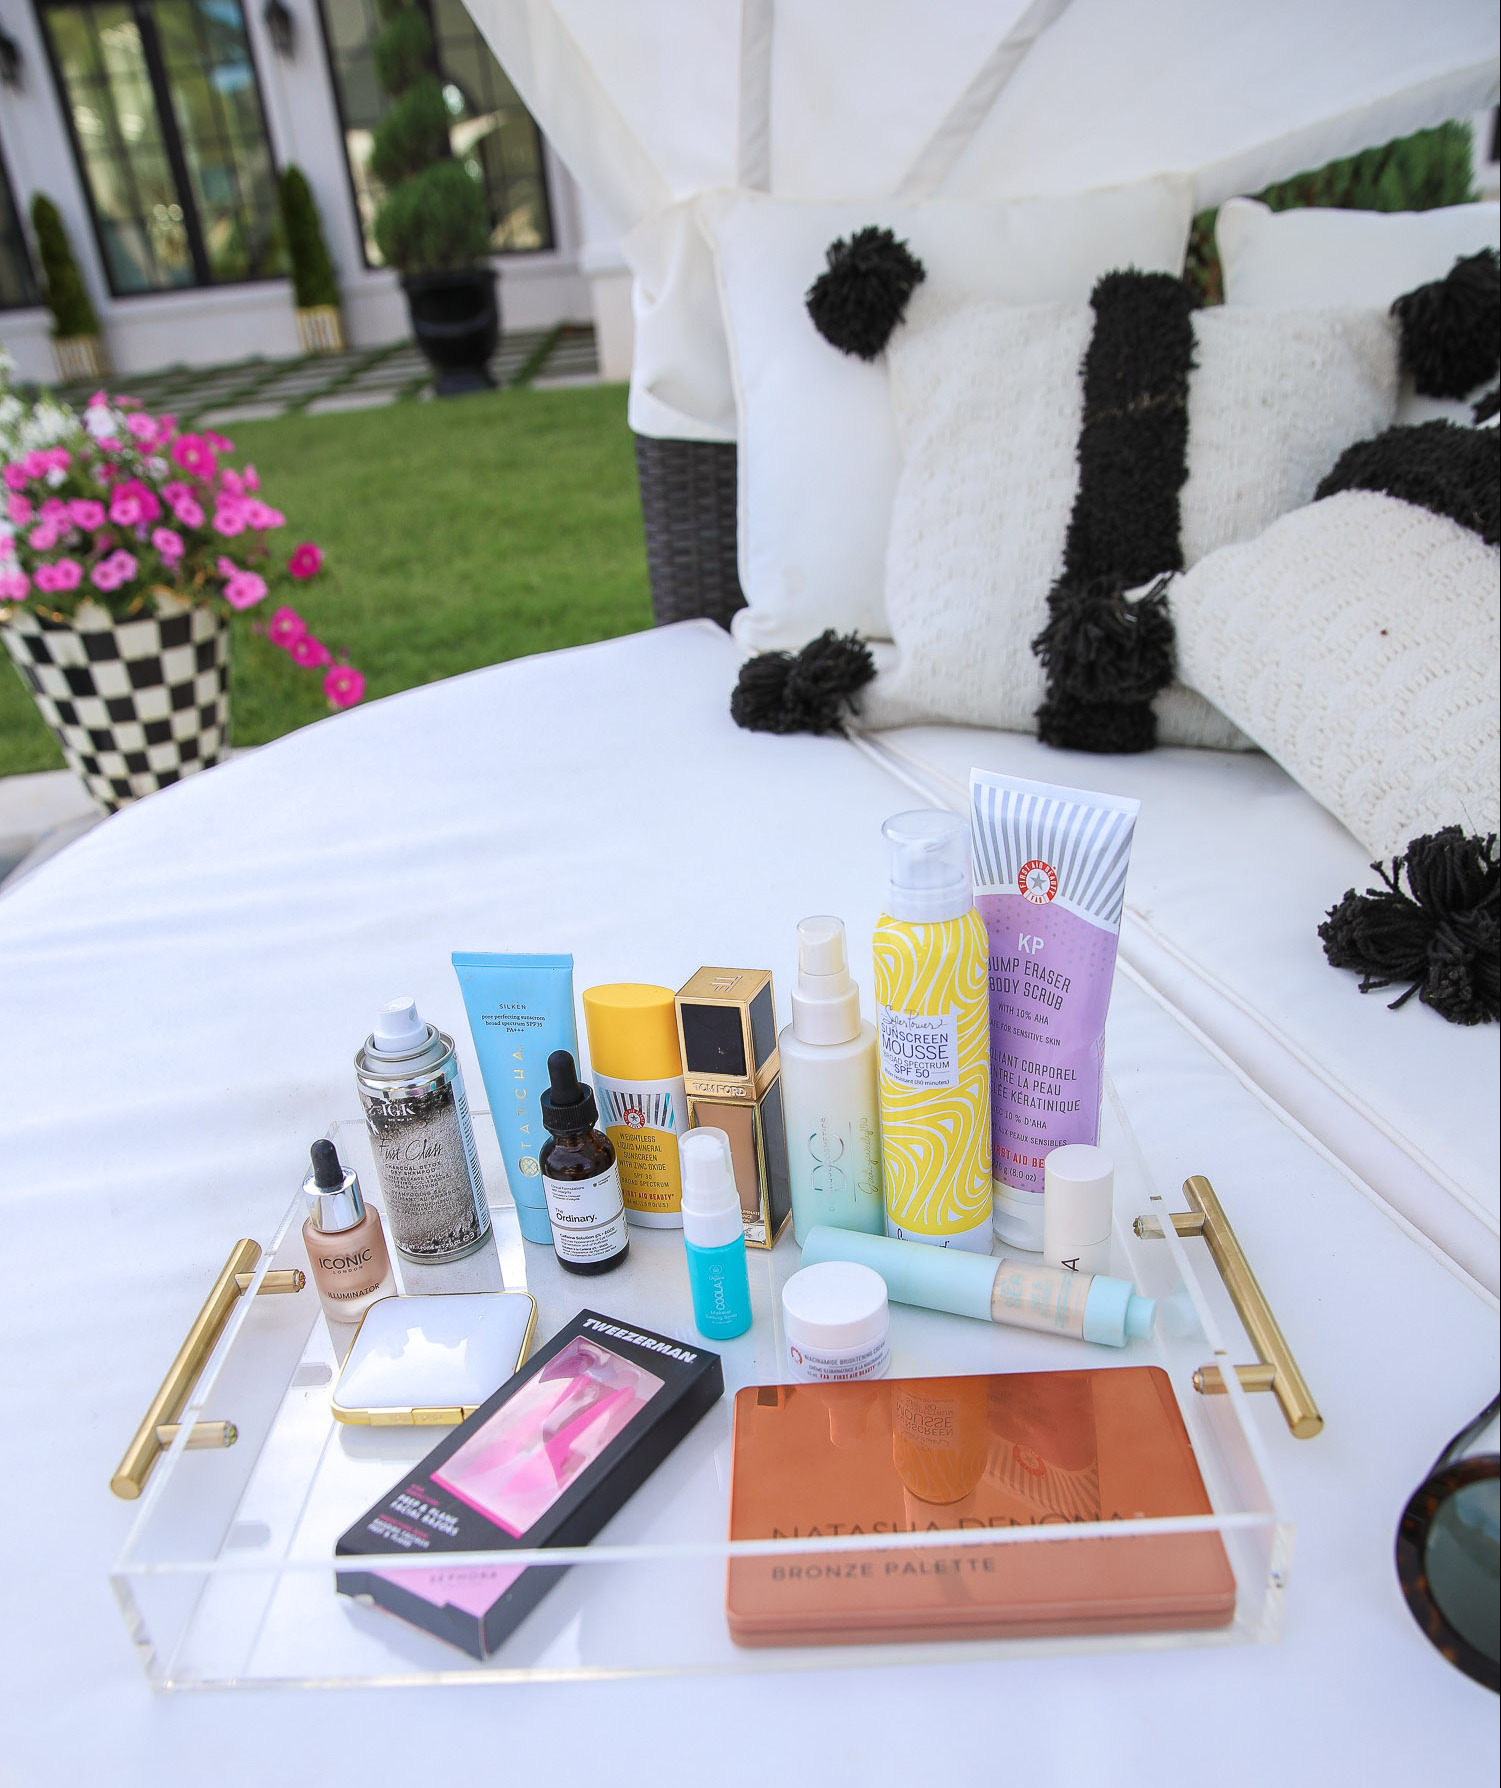 sephora haul beauty blogger july 2020, natasha denona bronze palette review, best dry shampoo at sephora, tarte SPF powder, emily gemma house | Sephora Favorites by popular US beauty blog, The Sweetest Thing: image of an acrylic tray filled with Sephora natasha denona bronze palette, tarte SPF powder, URBAN DECAY Naked Ultraviolet Eyeshadow Palette, SUPERGOOP! PLAY Body Mousse SPF 50 with Blue Sea Kale, COOLA Makeup Setting Spray Organic Sunscreen SPF 30, FIRST AID BEAUTY KP Bump Eraser Body Scrub with 10% AHA, TOM FORD Traceless Soft Matte Foundation, ICONIC LONDON Illuminator Liquid Highlight, FIRST AID BEAUTY Eye Duty Niacinamide Brightening Eye Cream, TWEEZERMAN Prep & Plane Facial Razors, IGK First Class Charcoal Detox Dry Shampoo, DOMINIQUE COSMETICS Ultra Hydrating Fine Mist, The Ordinary Caffeine Solution 5% + EGCG, and TOM FORD Highlighting Duo.